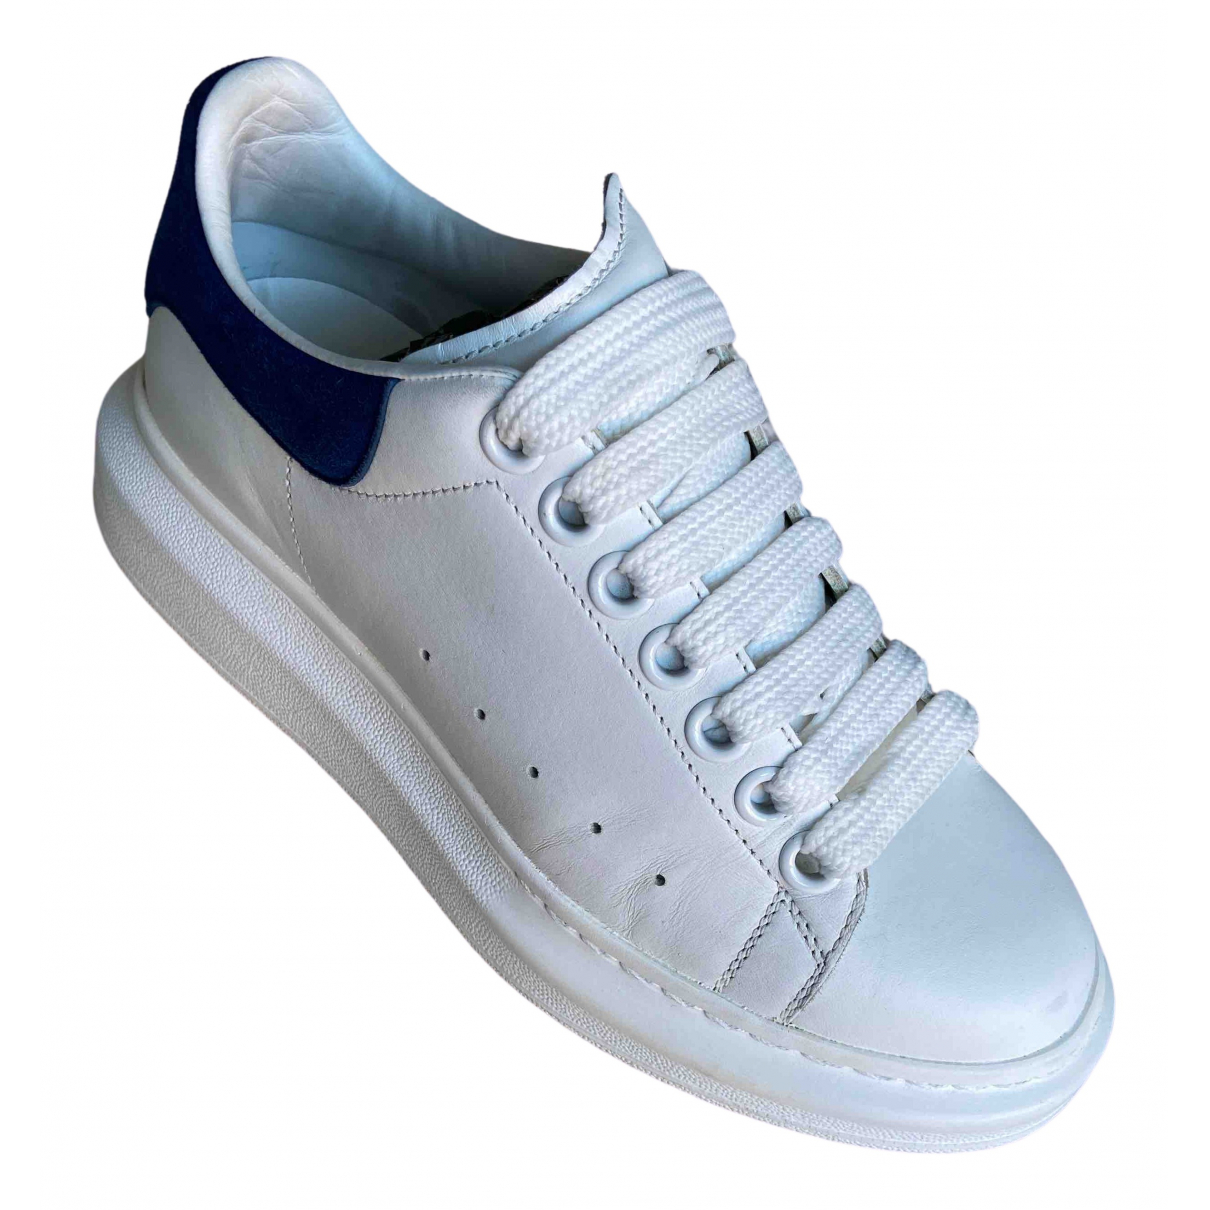 Alexander Mcqueen Oversize White Leather Trainers for Women 35.5 EU